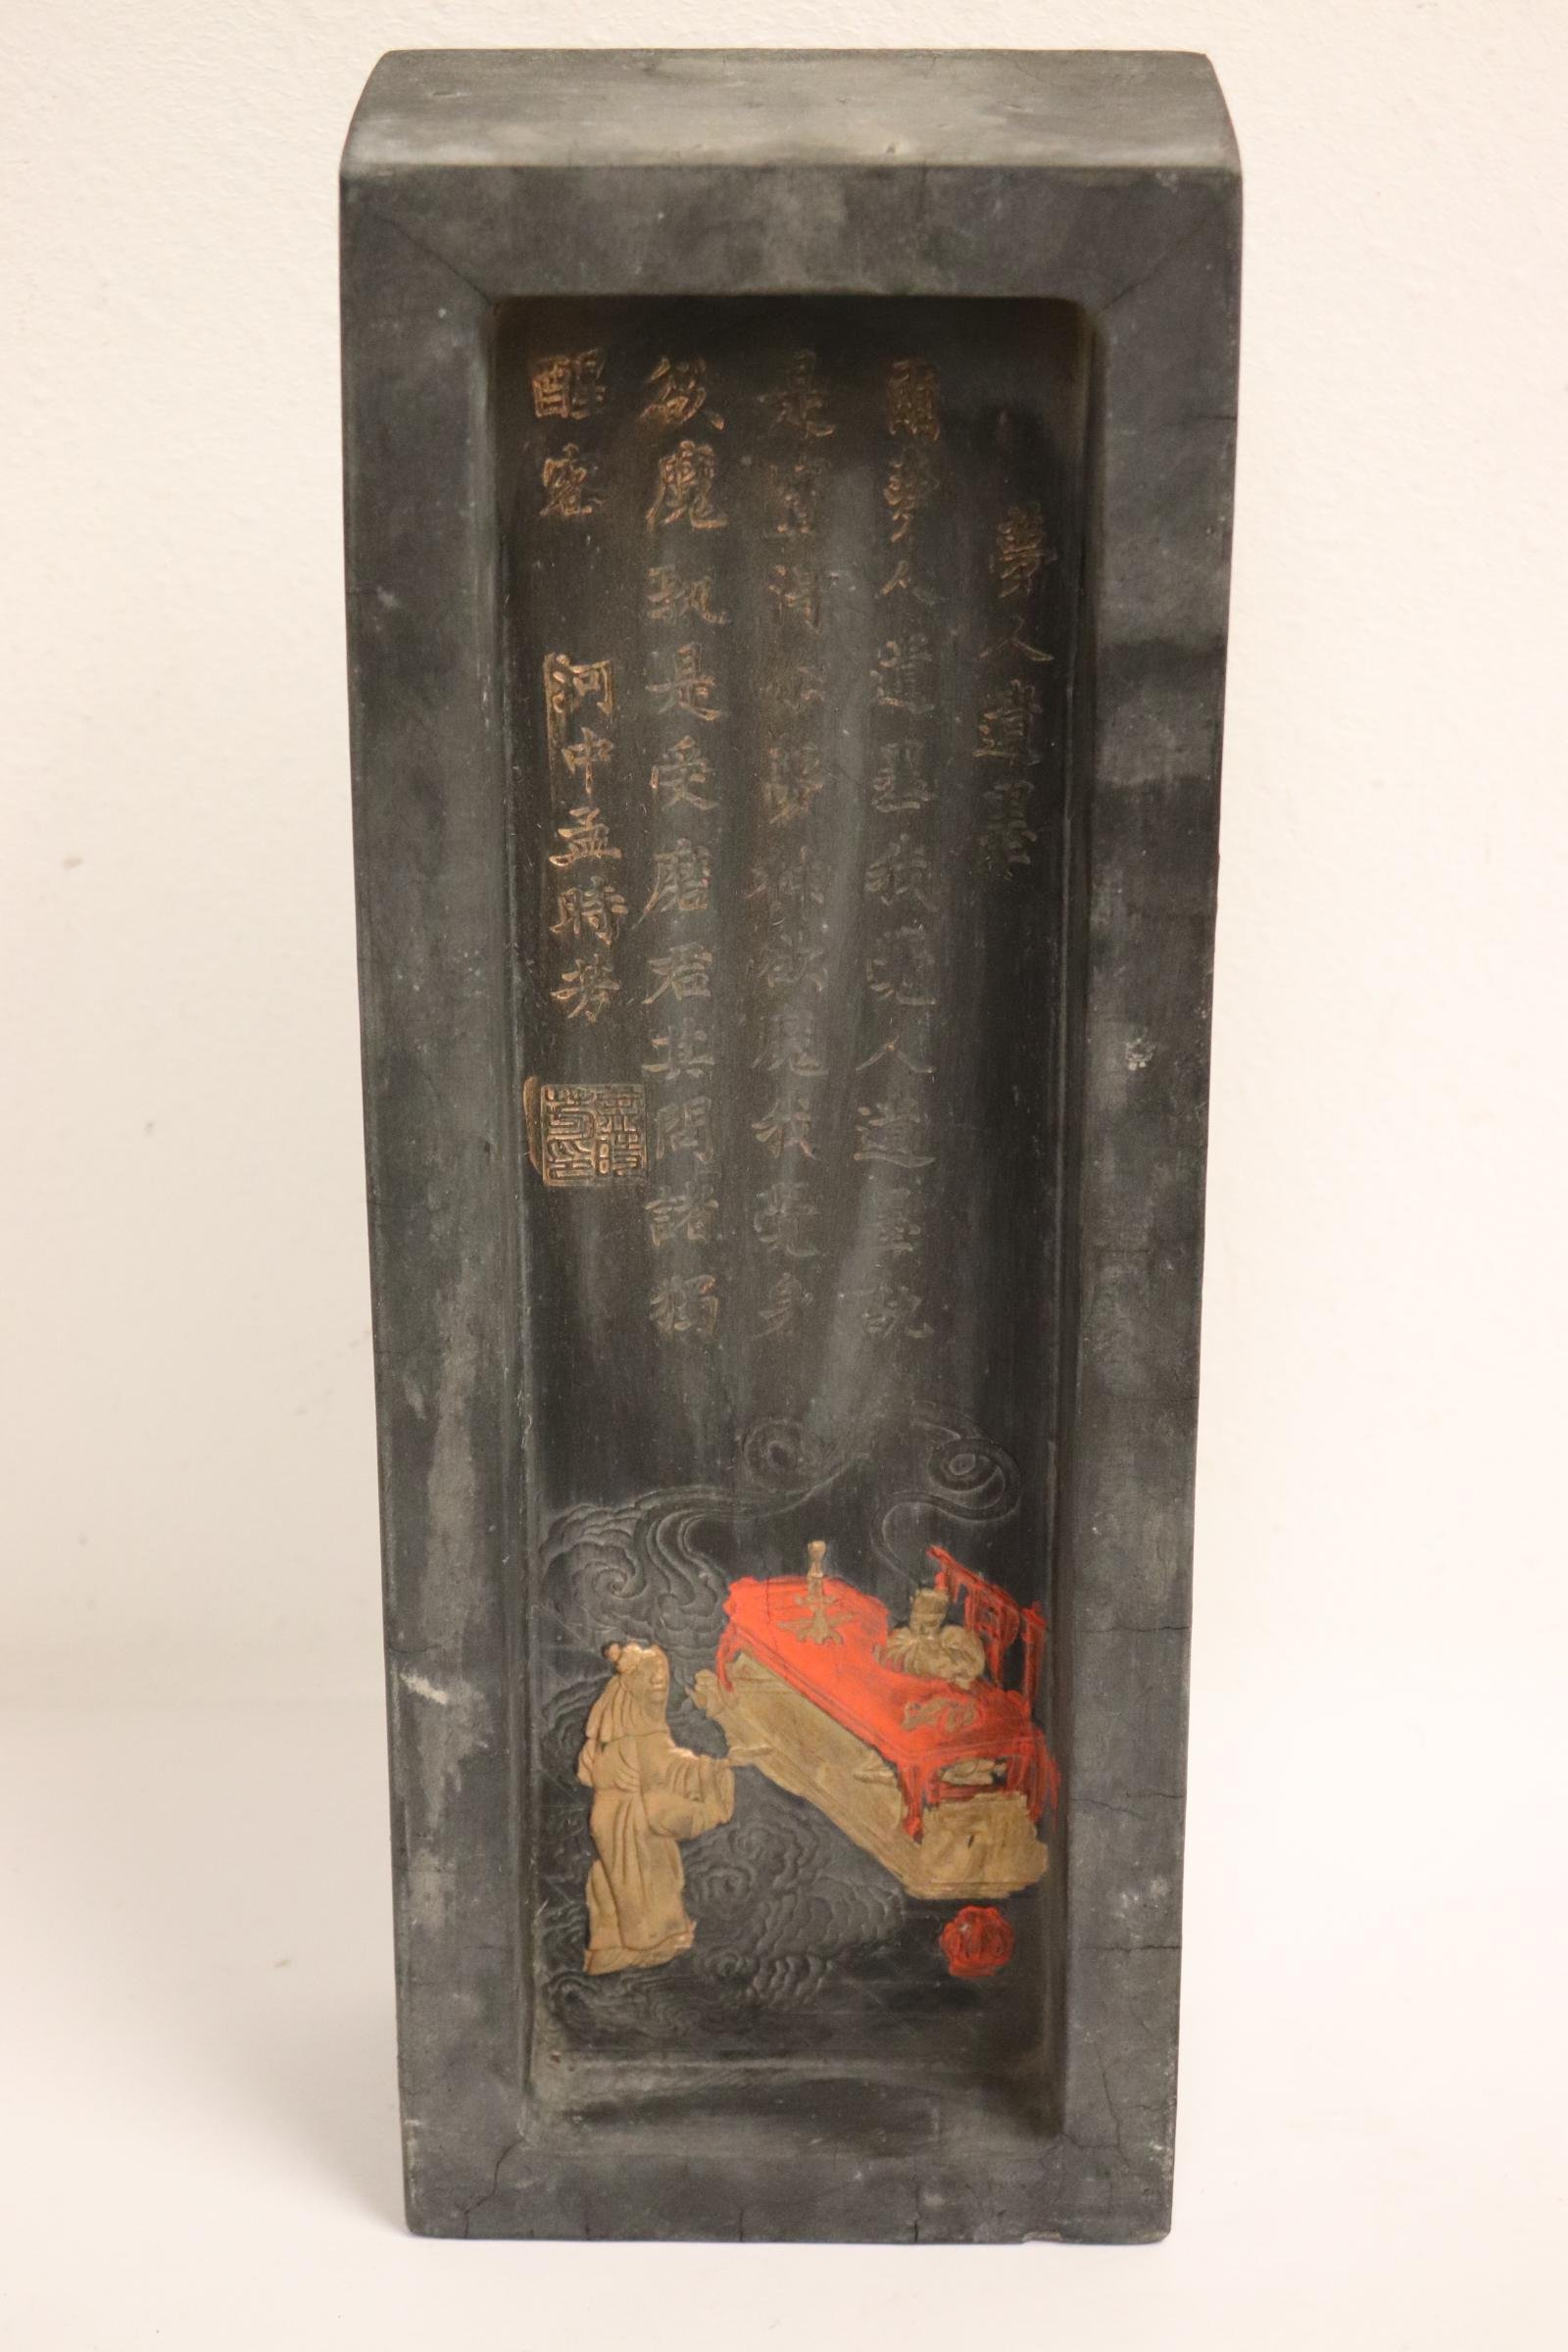 A rare Chinese ink stone/ inkwell